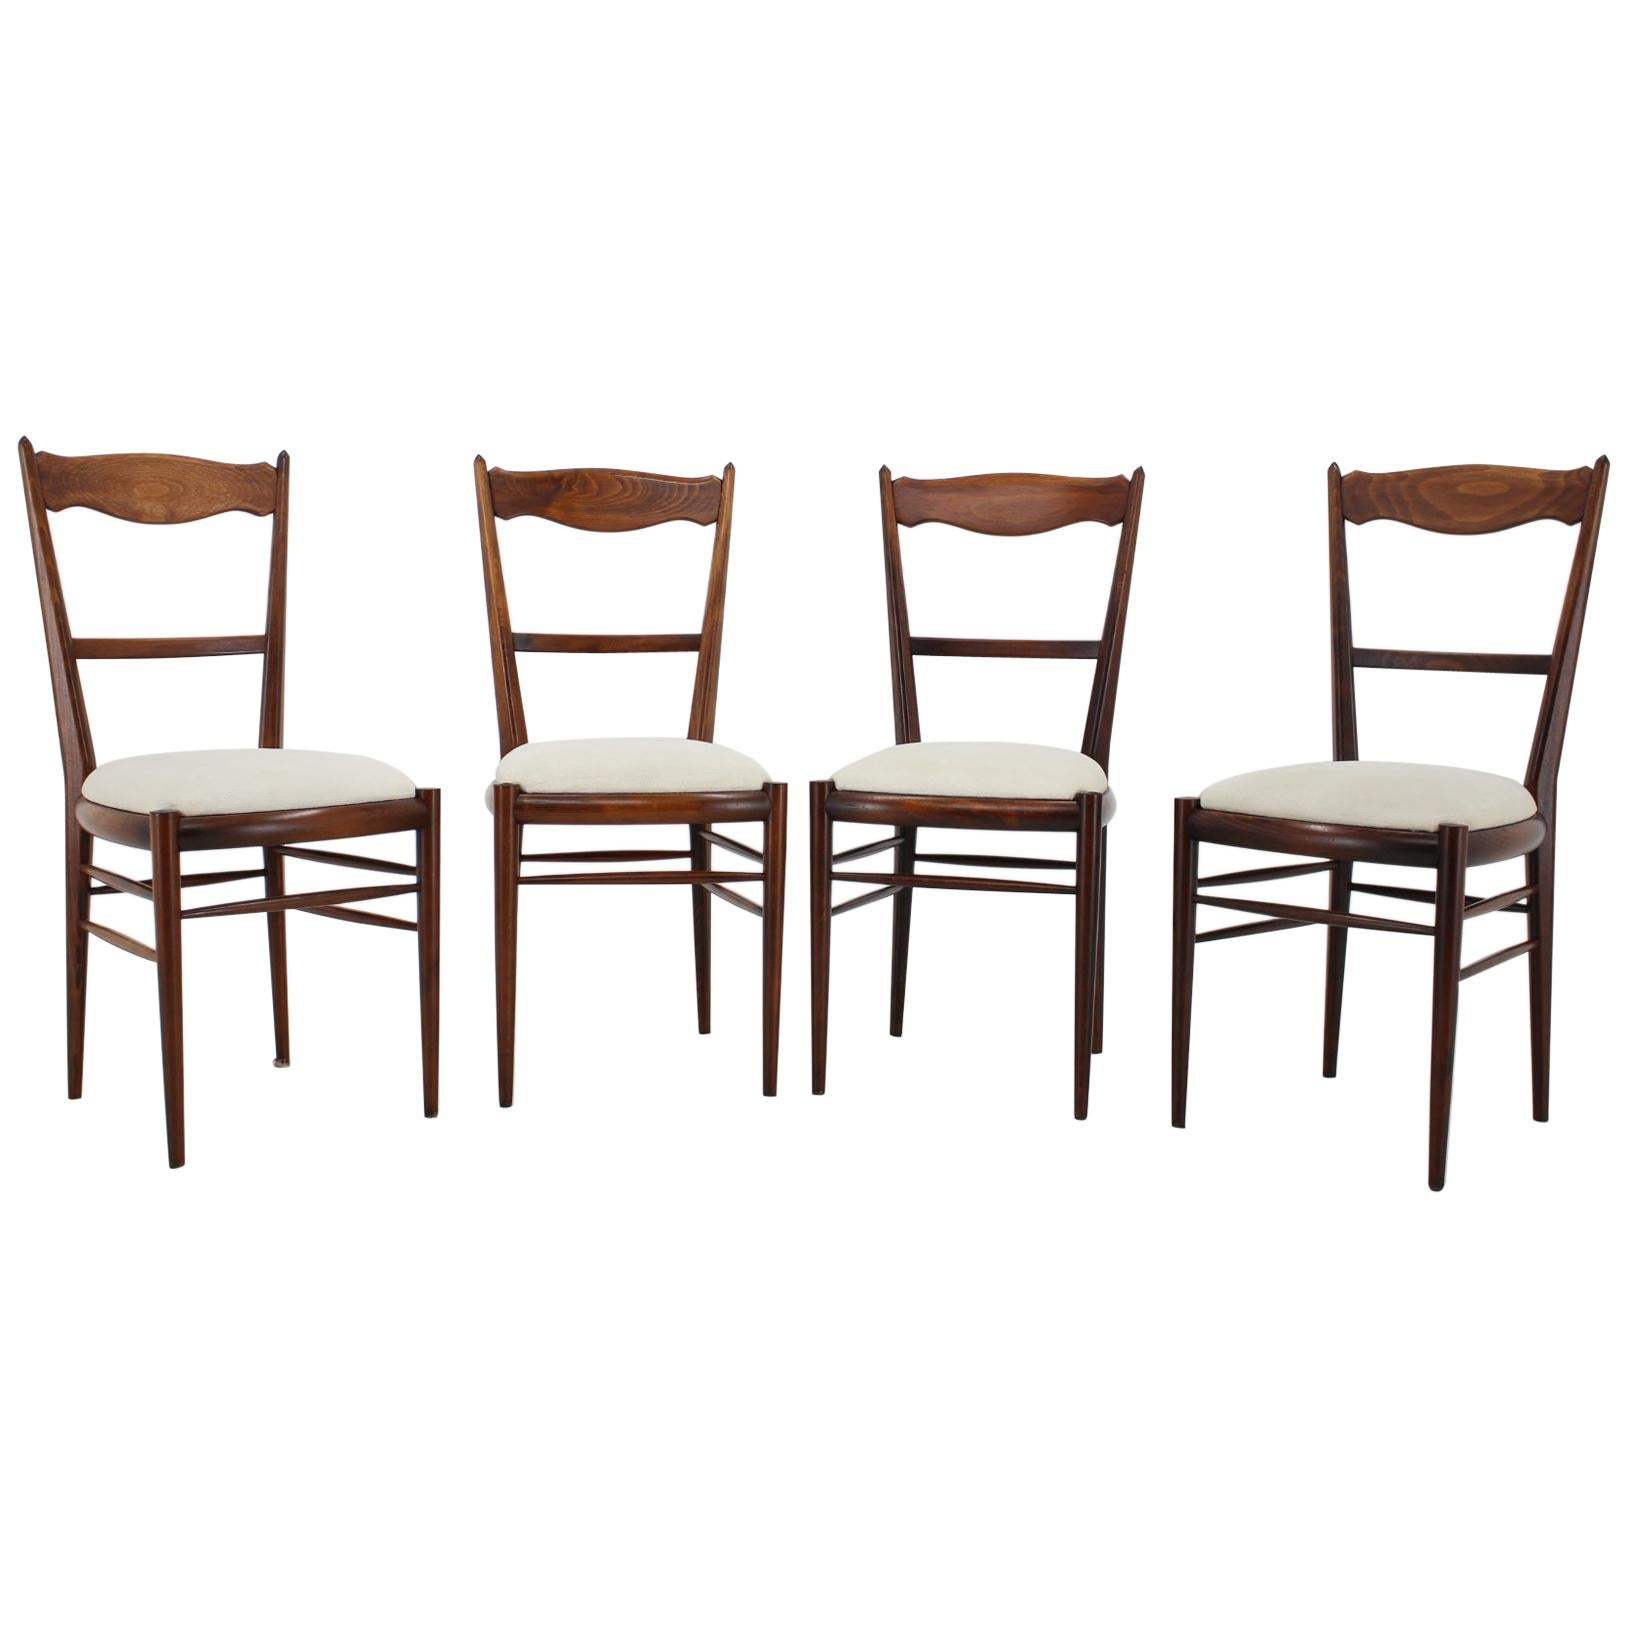 Set of Four Beech Dining Chairs, 1960s